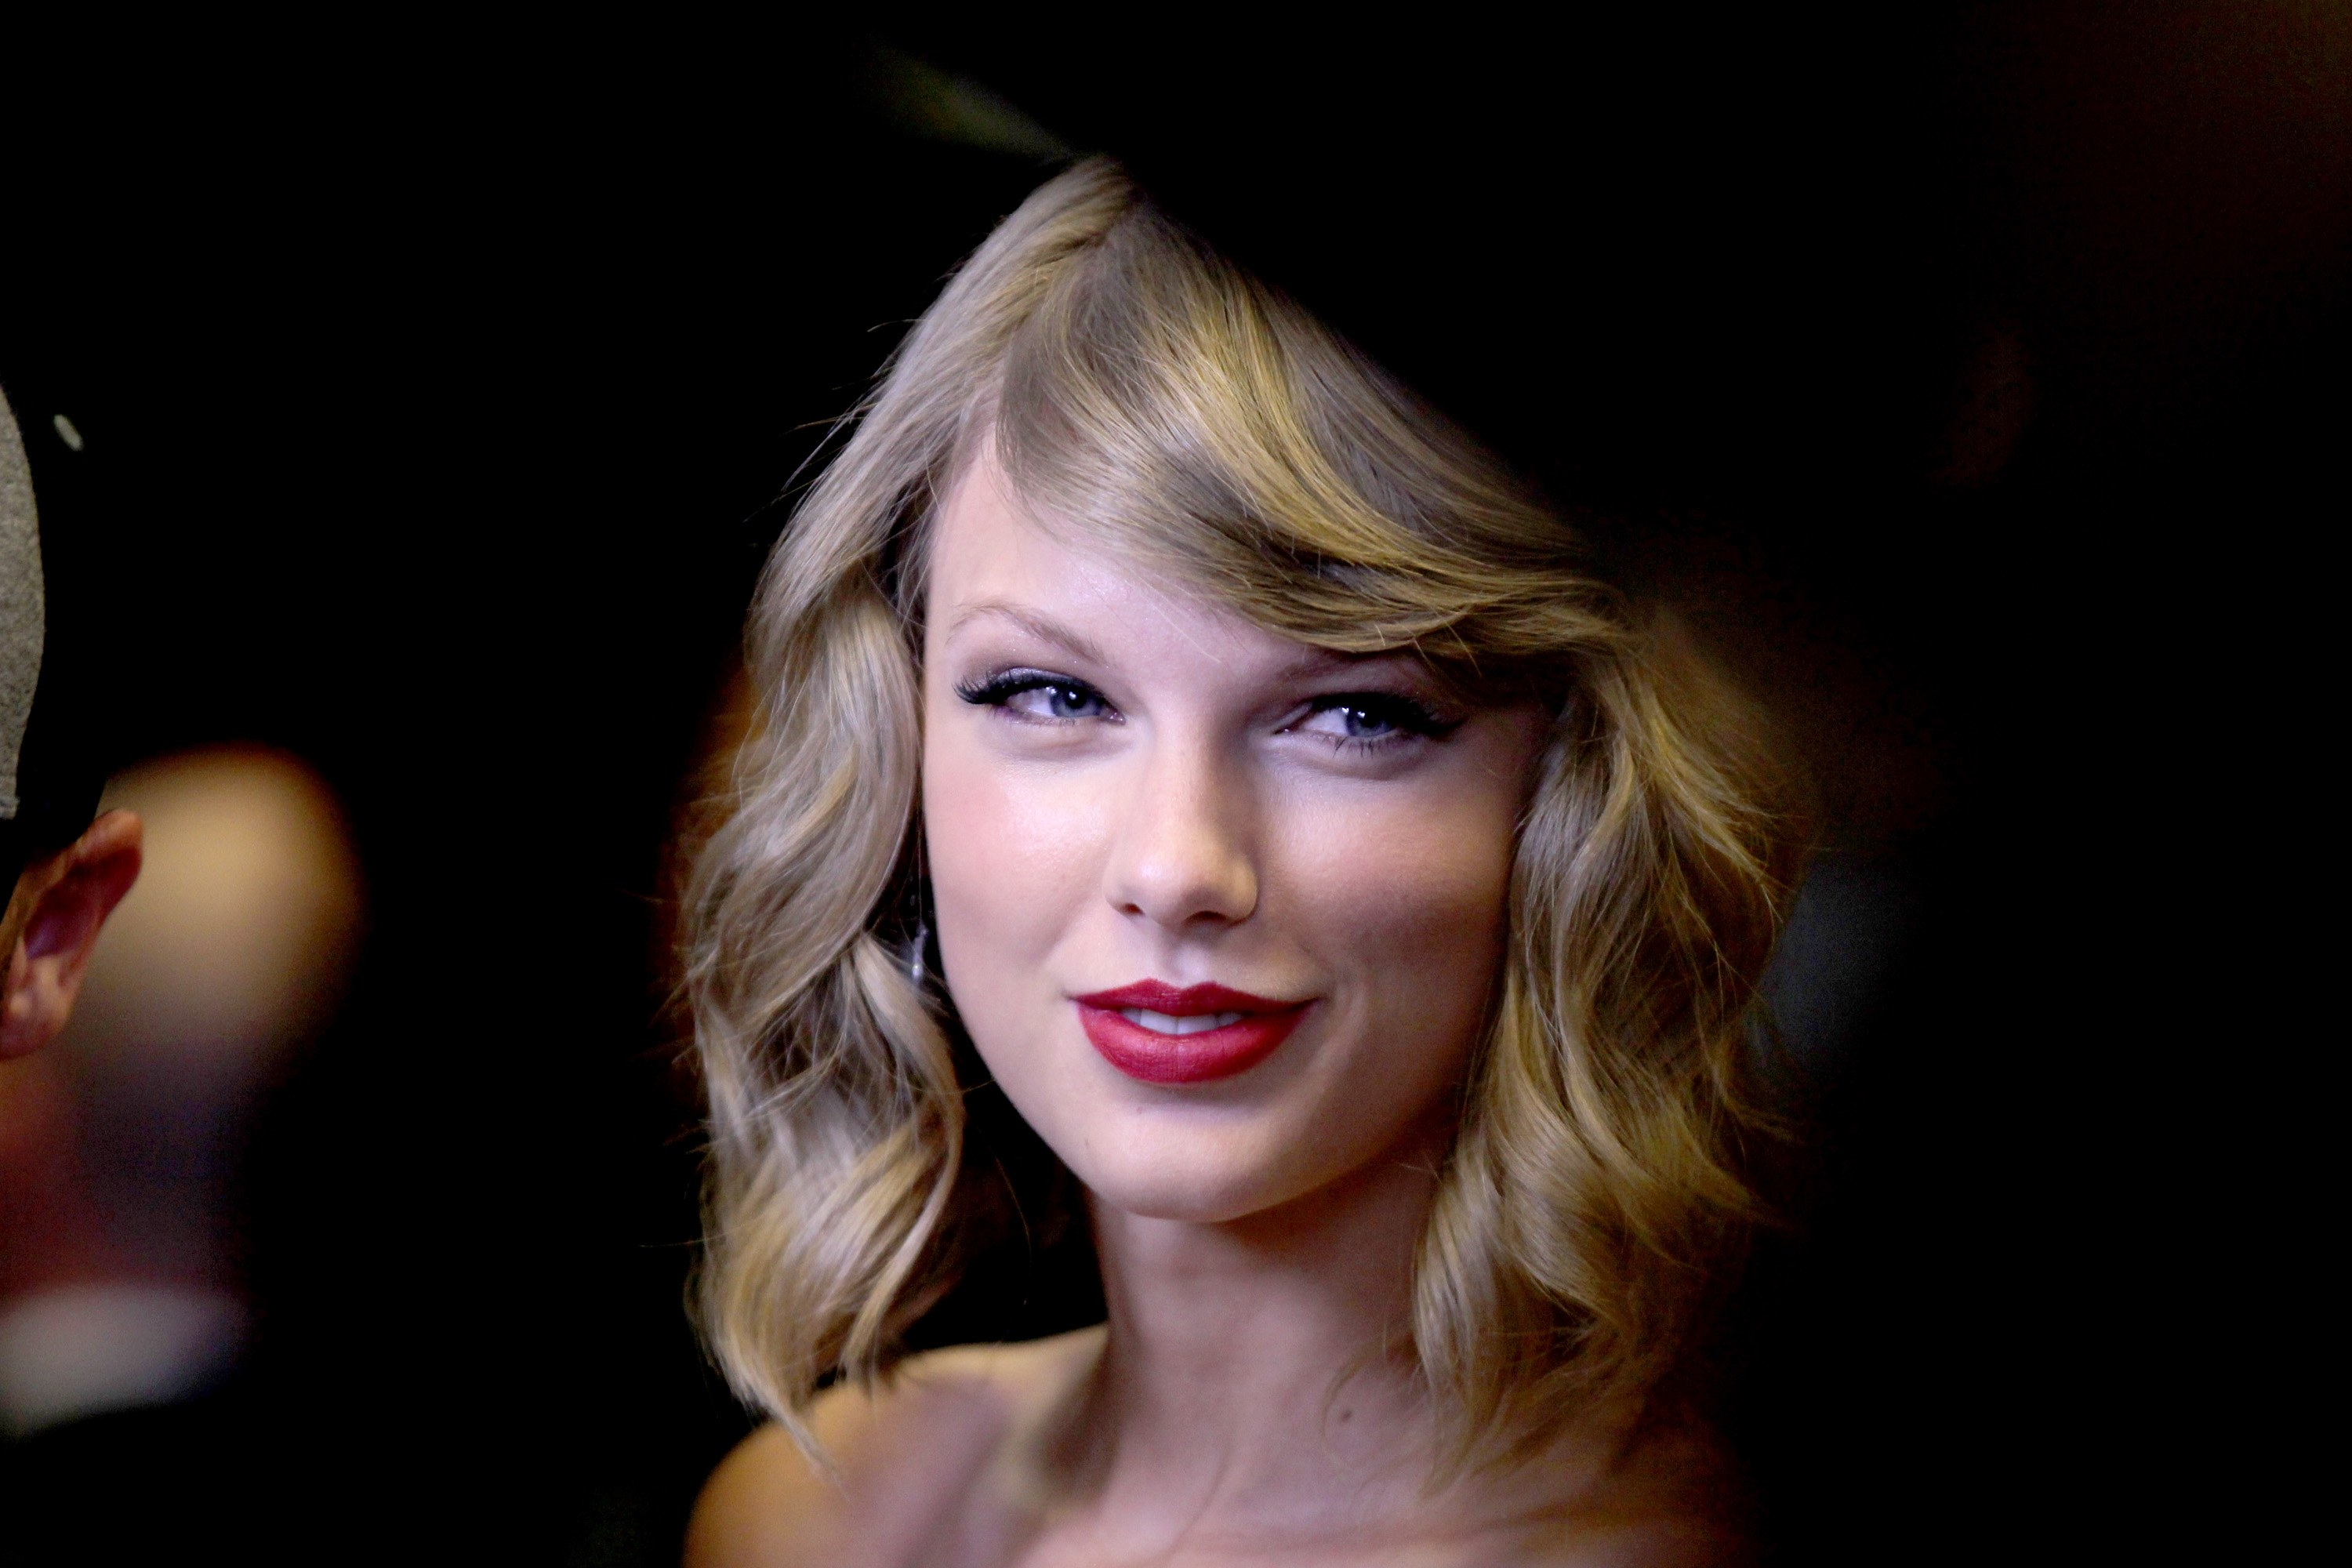 4k Taylor Swift 2017, HD Music, 4k Wallpapers, Images